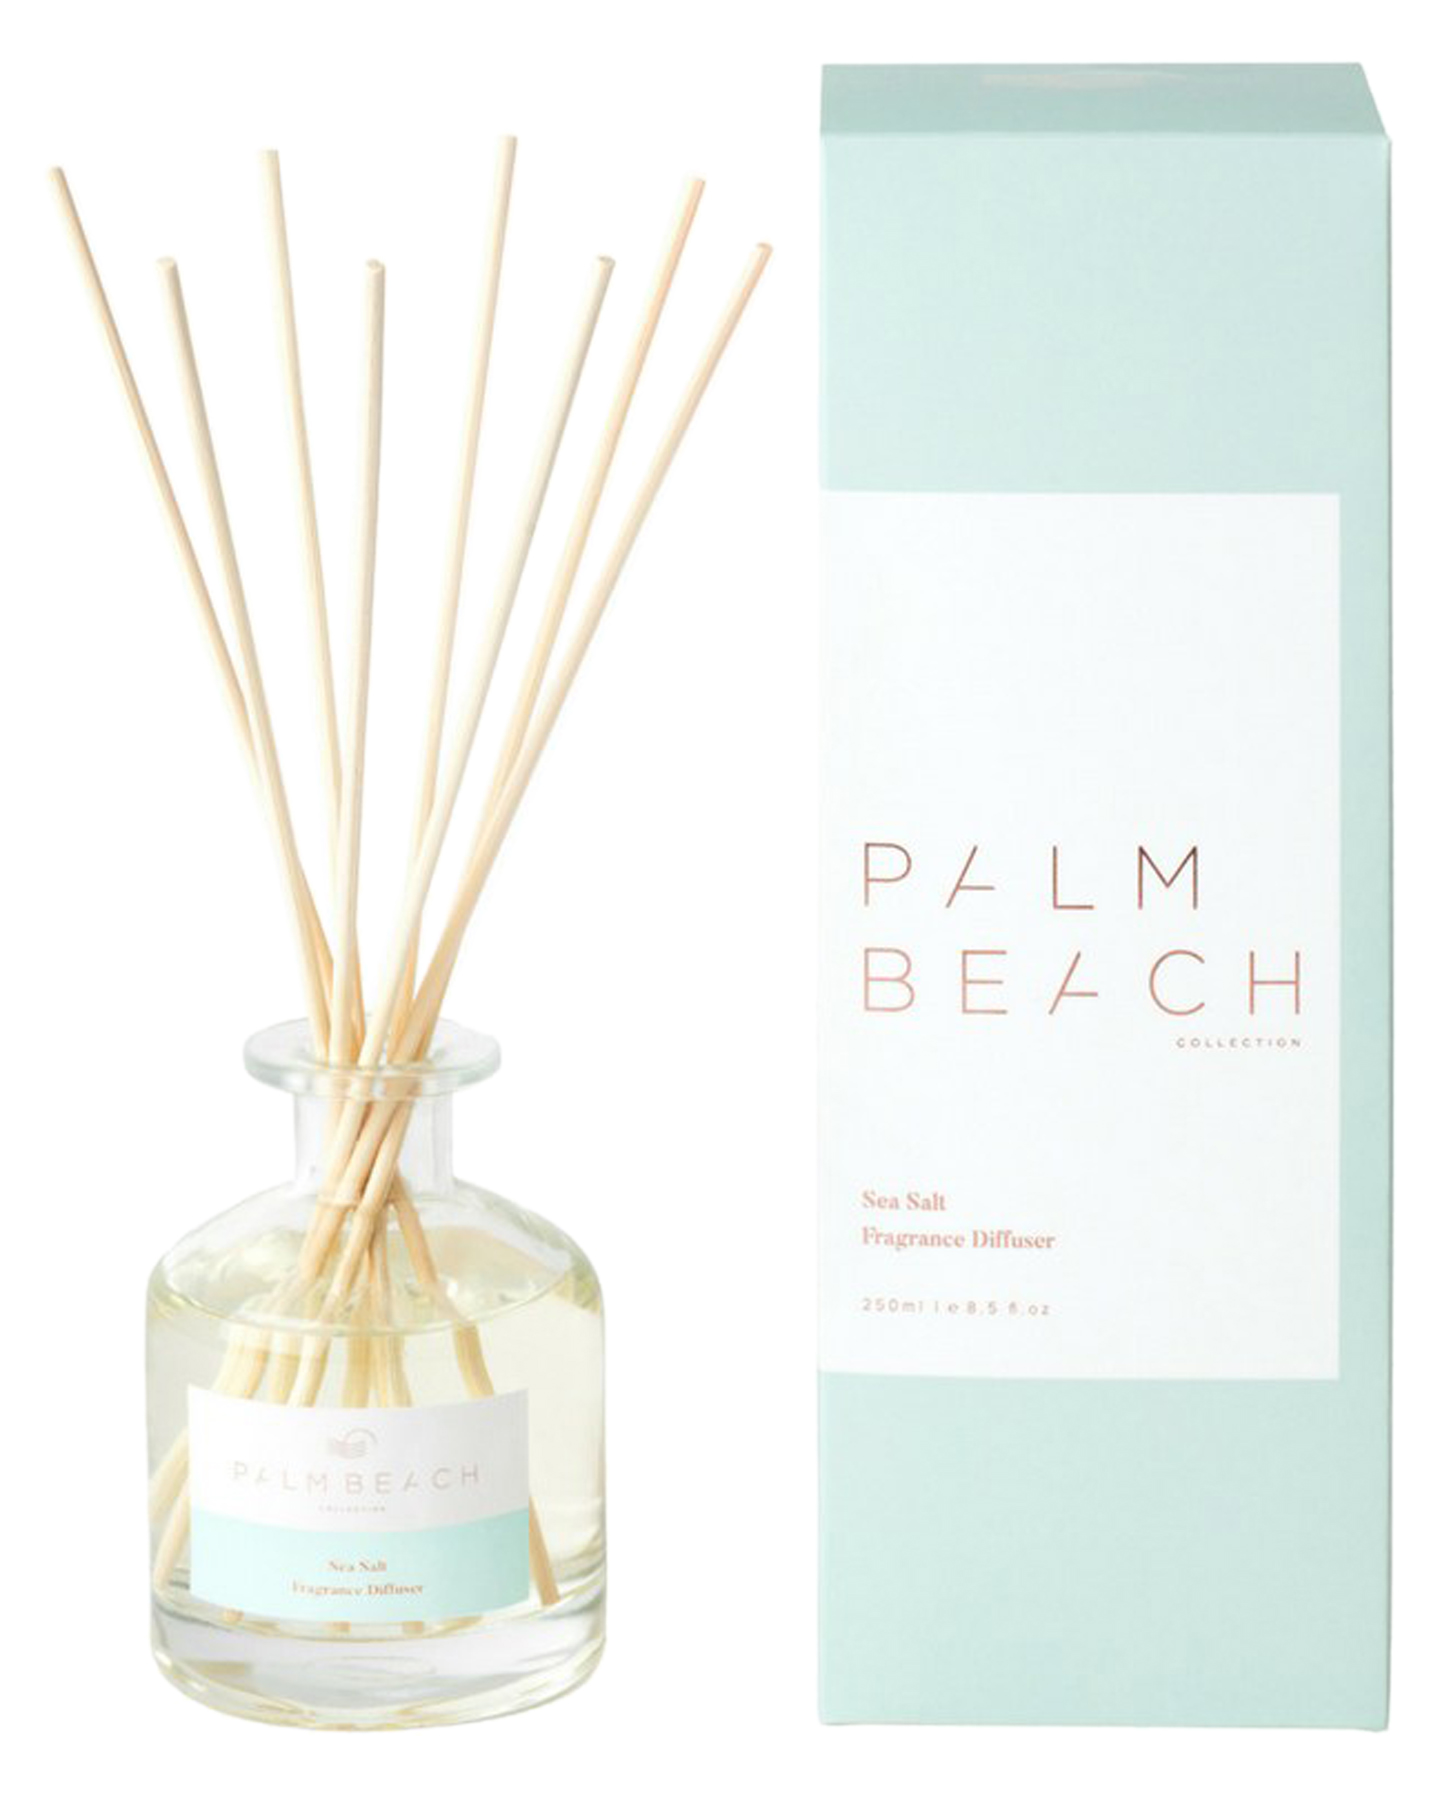 Palm Beach Collection Sea Salt Diffuser Sea Salt Sea Salt